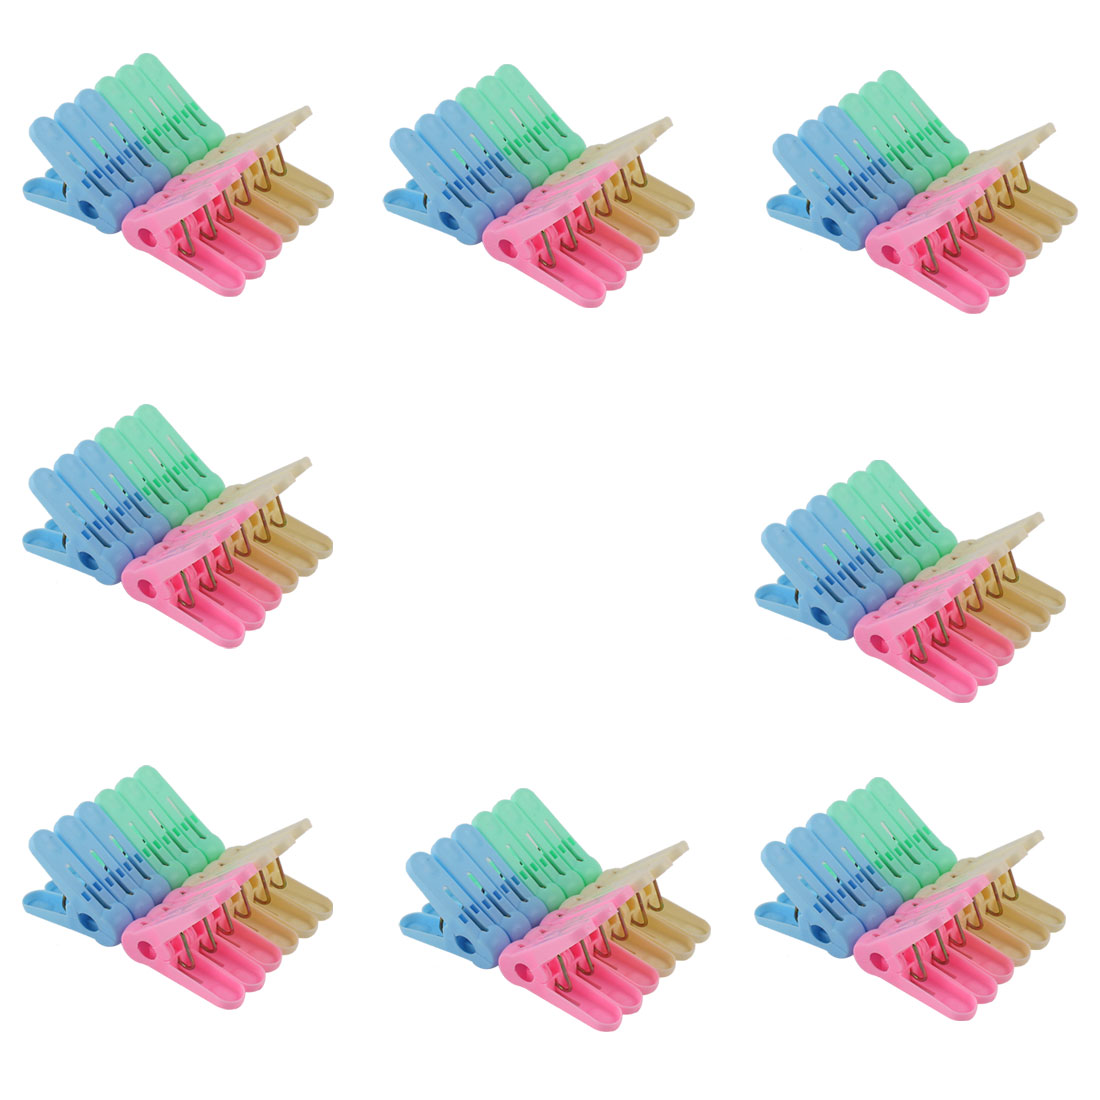 Household Plastic Socks Towel Clothing Clothes Clips Clamp Clothespin Assorted Color 96pcs